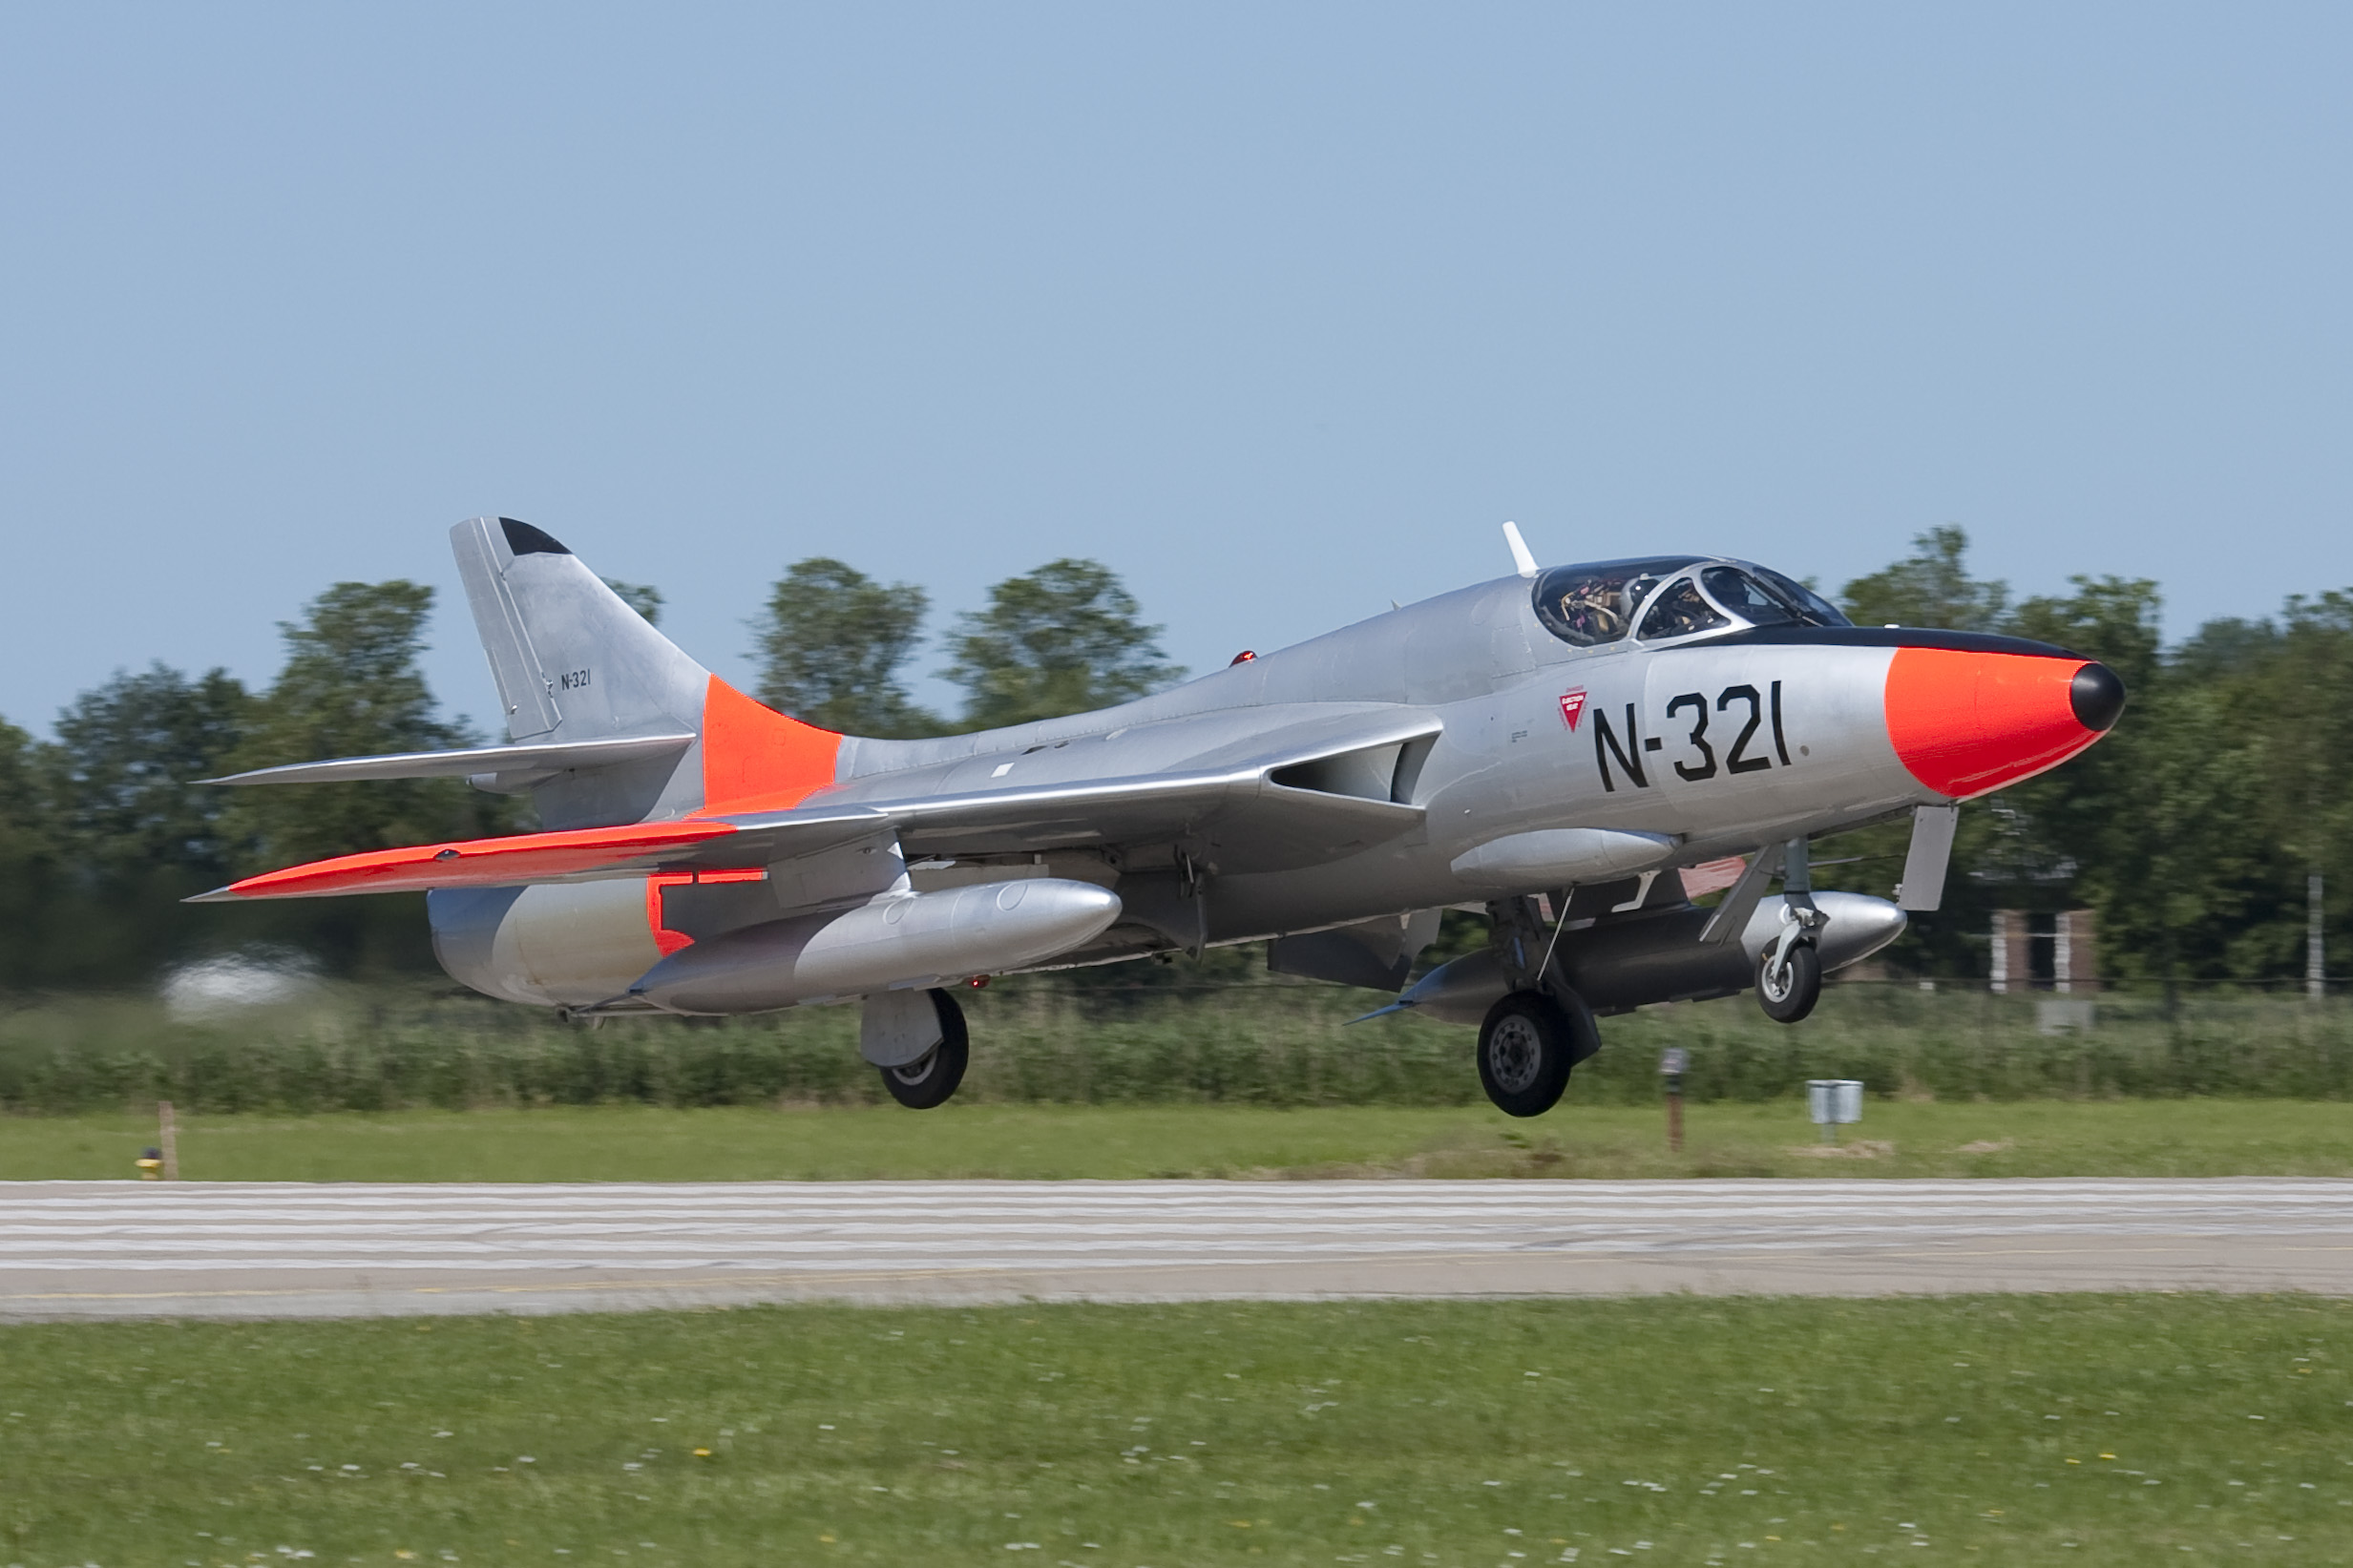 Dutch Hawker Hunter N-321